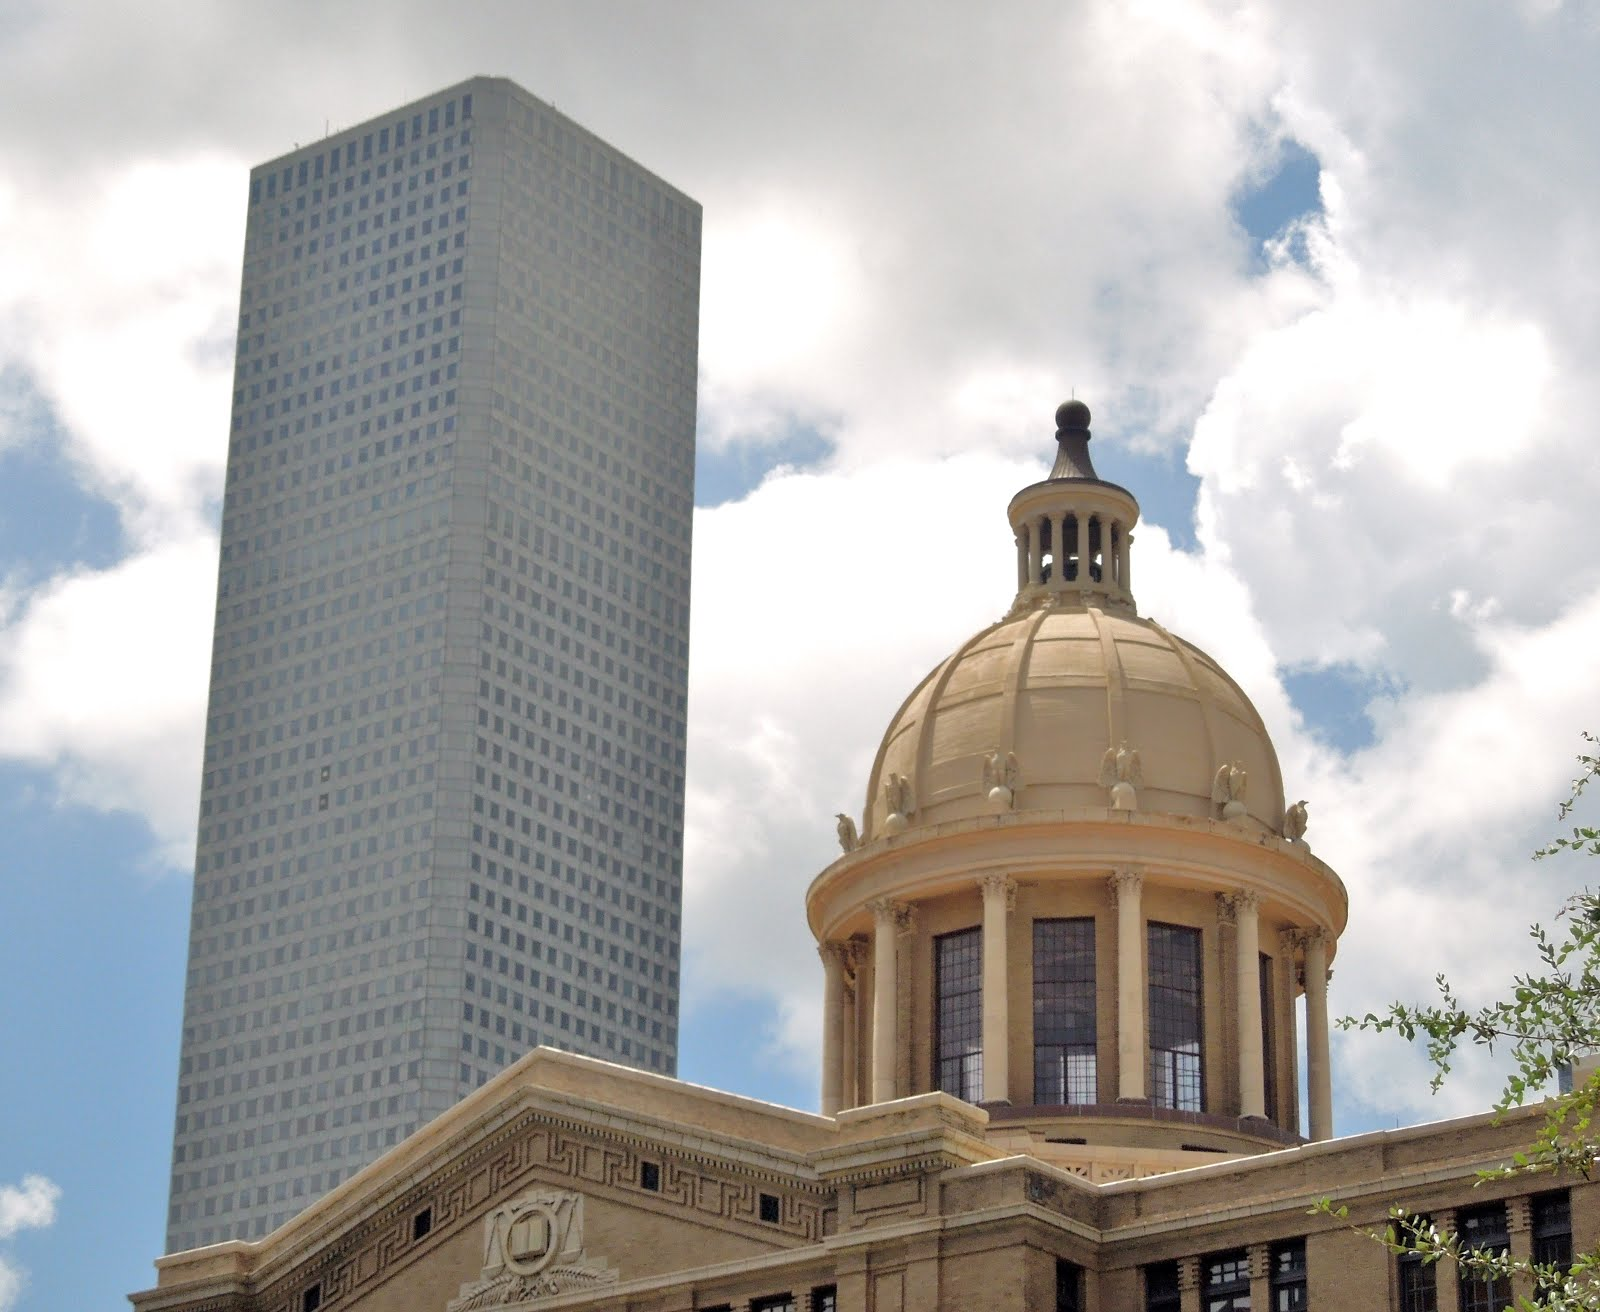 1910 Harris County Courthouse with Chase Tower